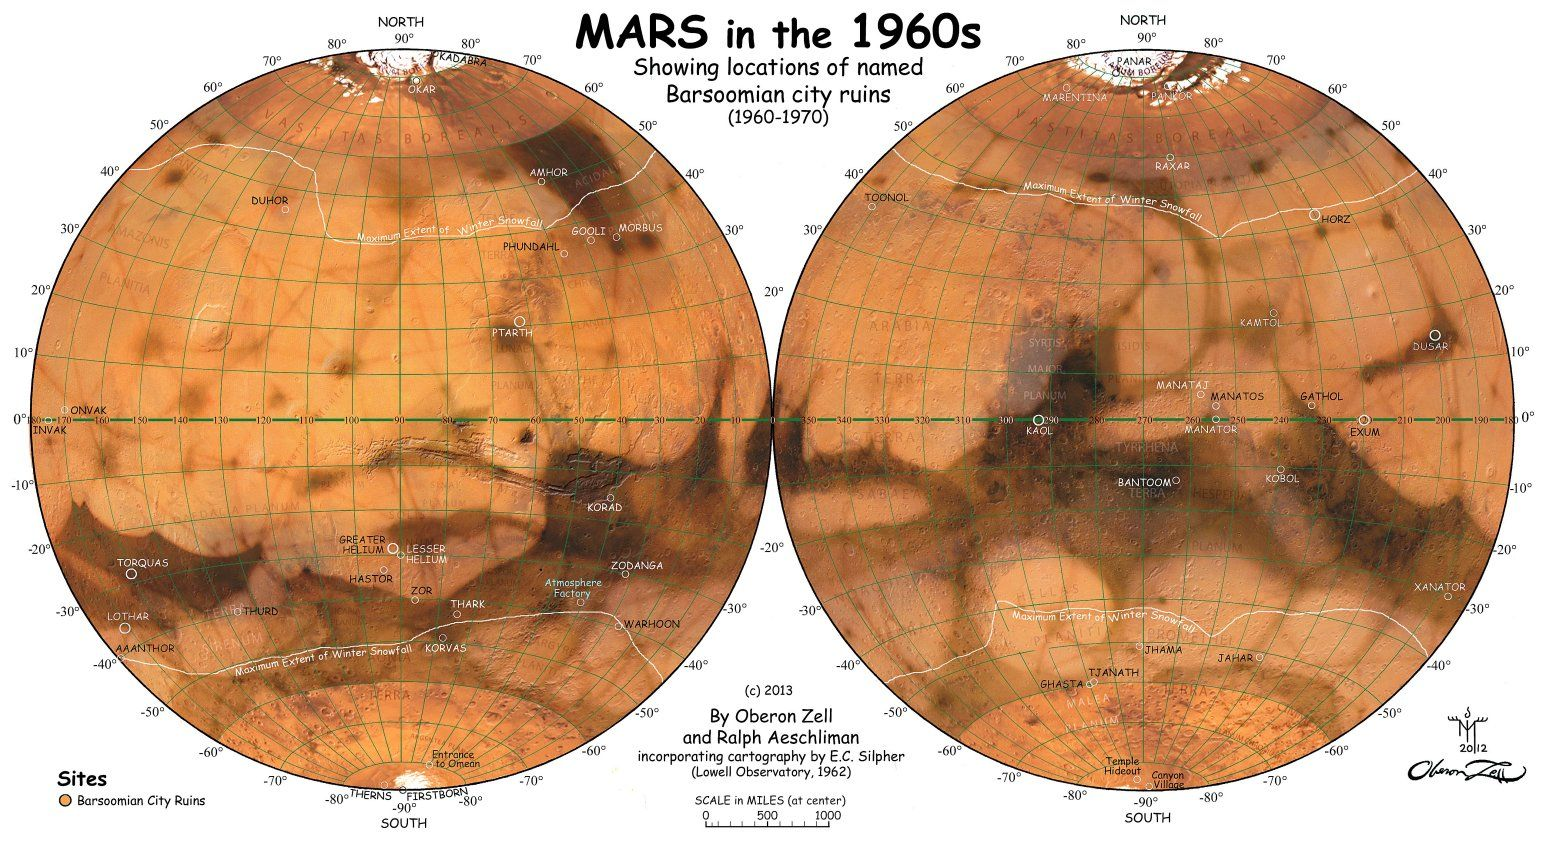 us airforce picture of mars 1960s